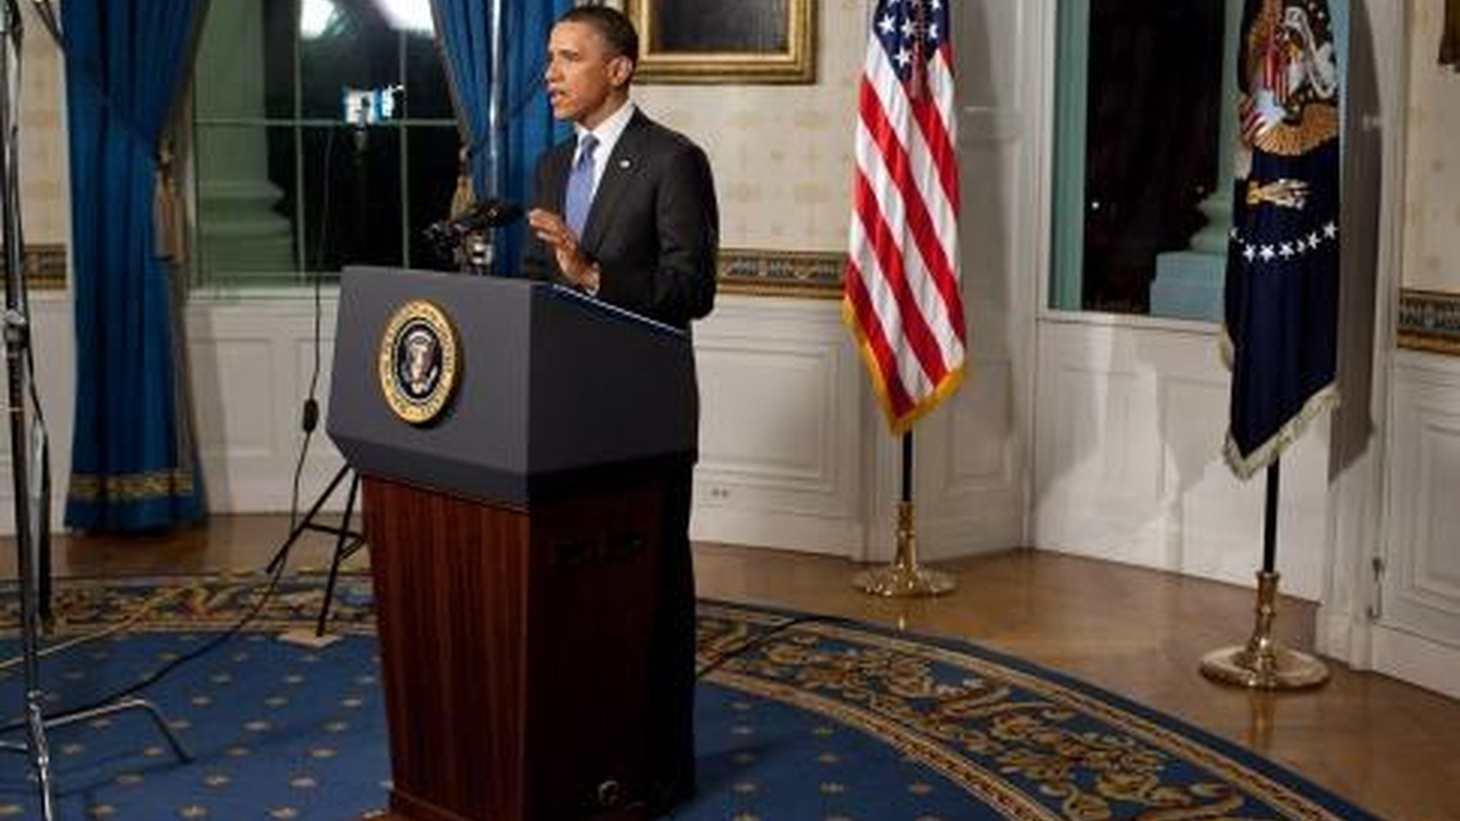 On Wednesday, April 13, President Obama will speak about on the 2012 budget and overhauling entitlement programs, including cuts to Medicare and Medicaid. (10:35am)